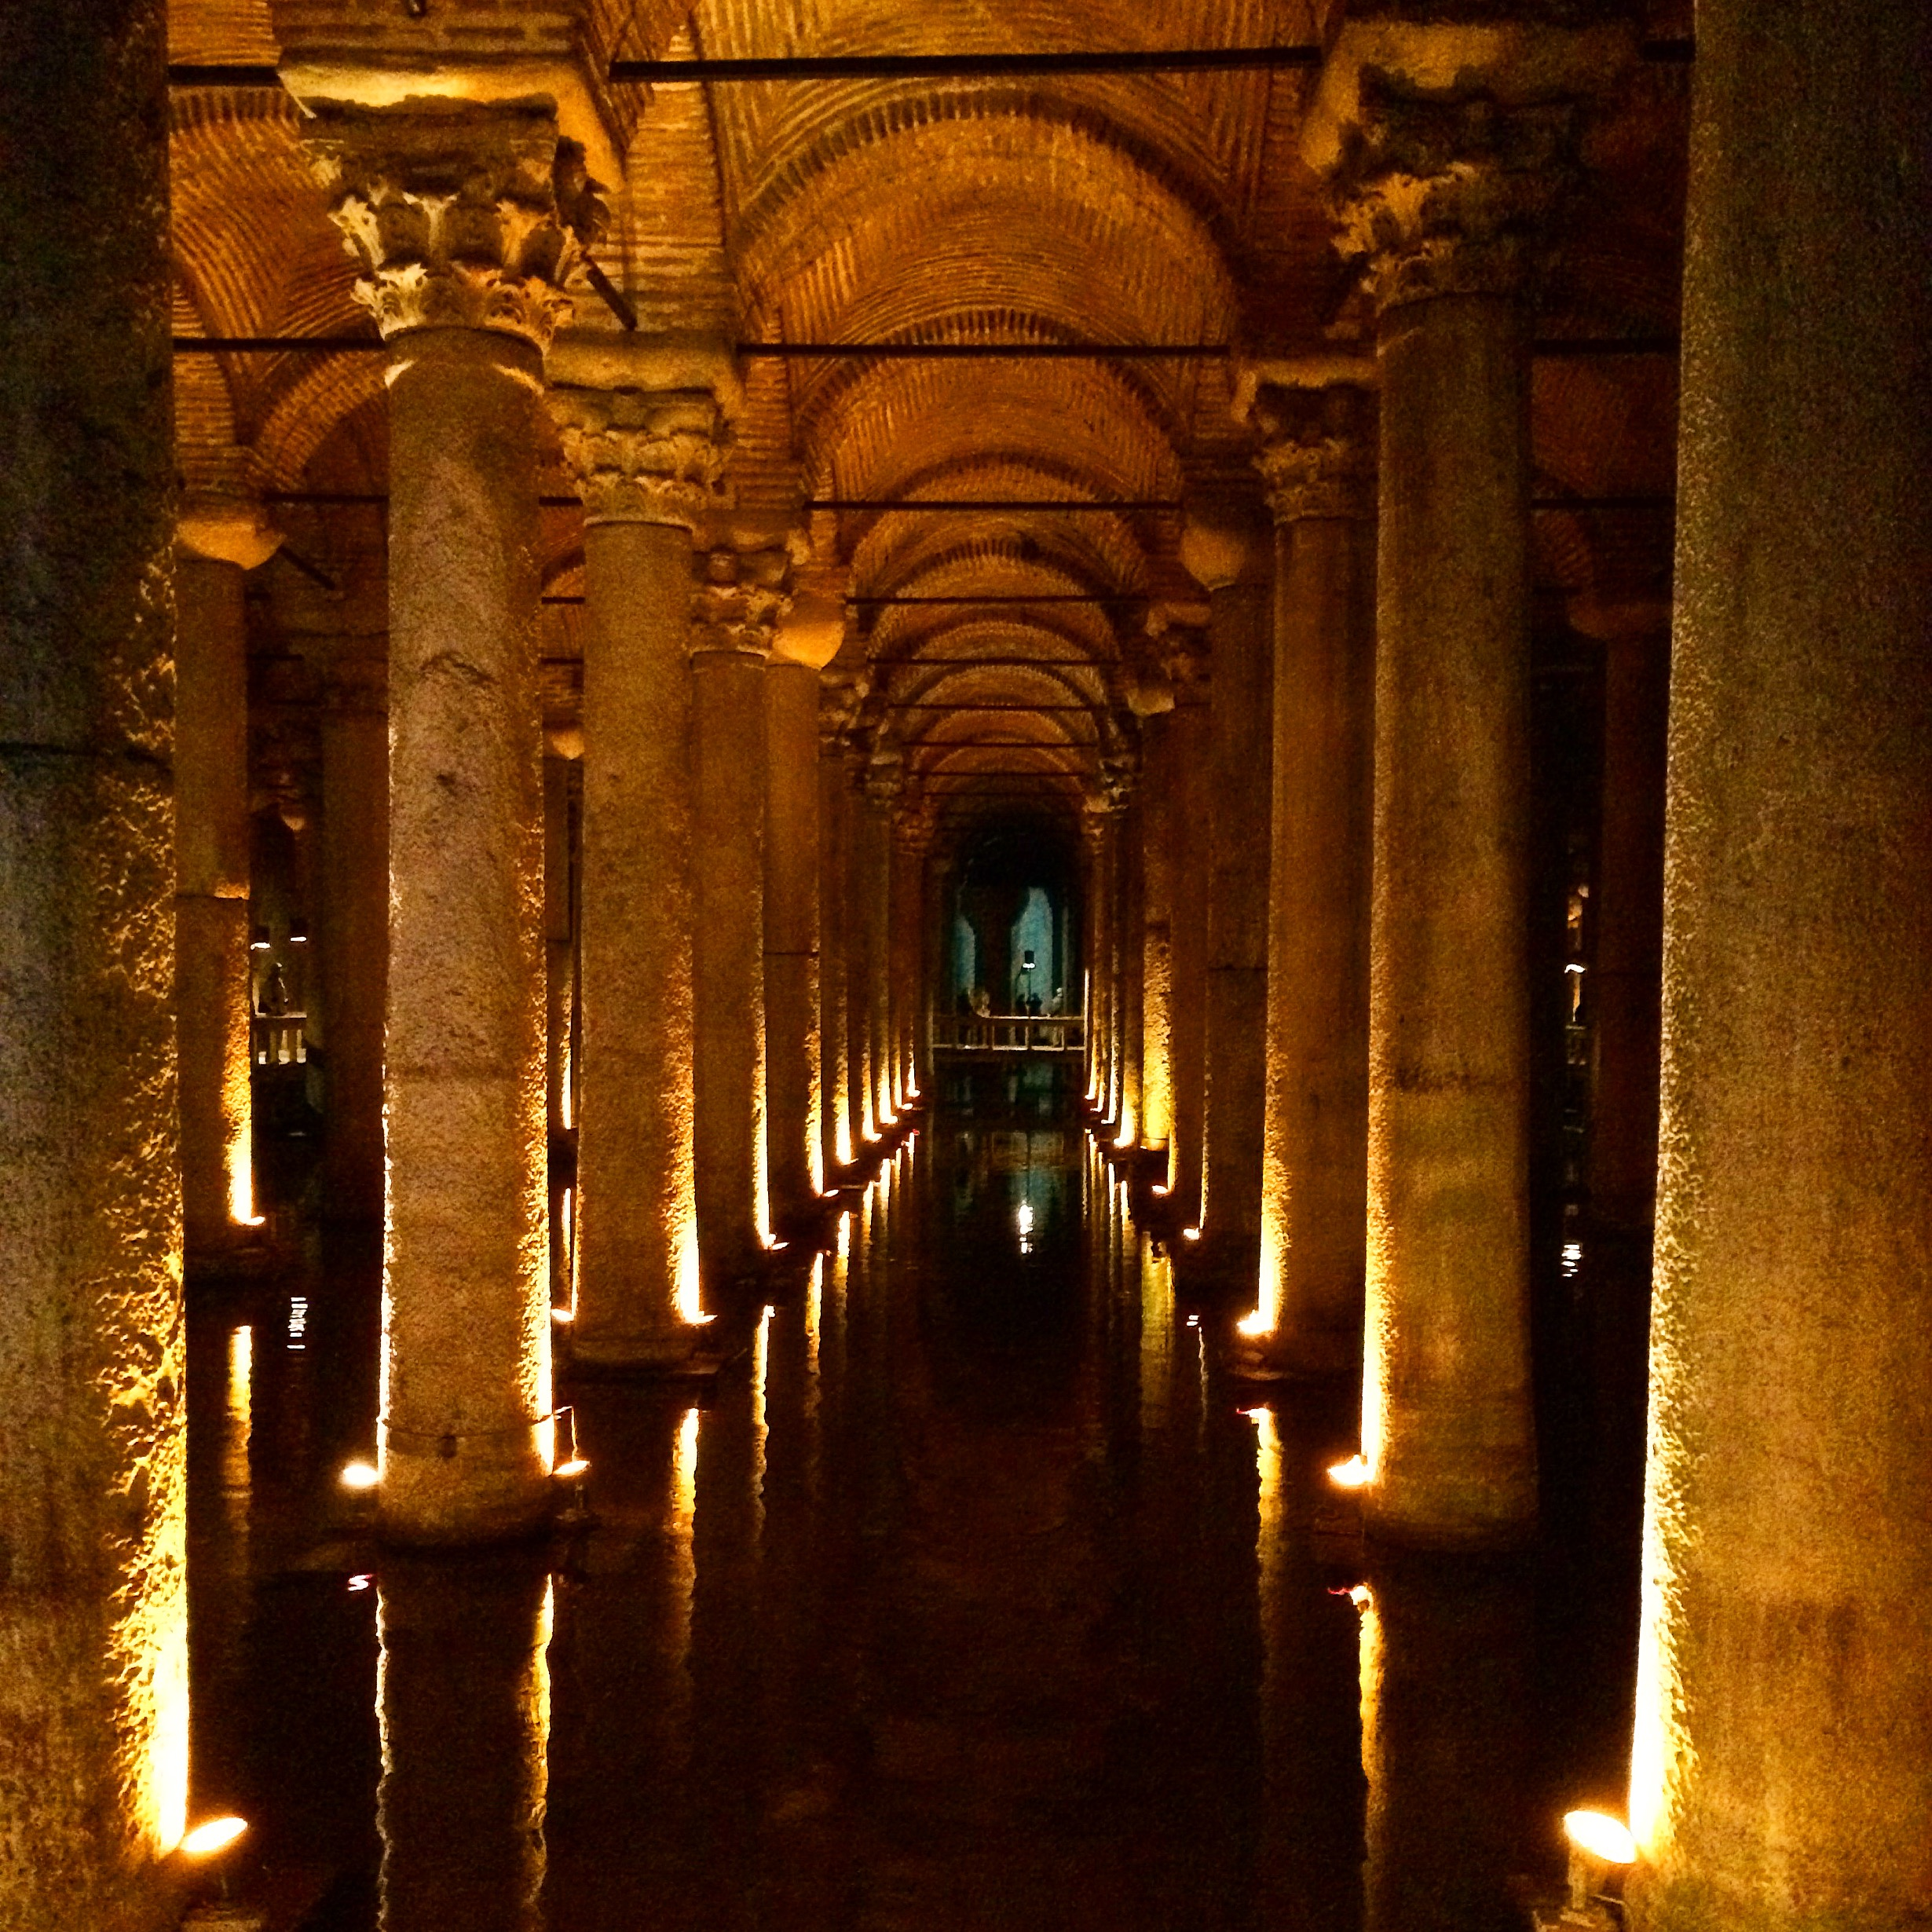 The Basilica Cistern is beautiful, but the entire space looks just like this!